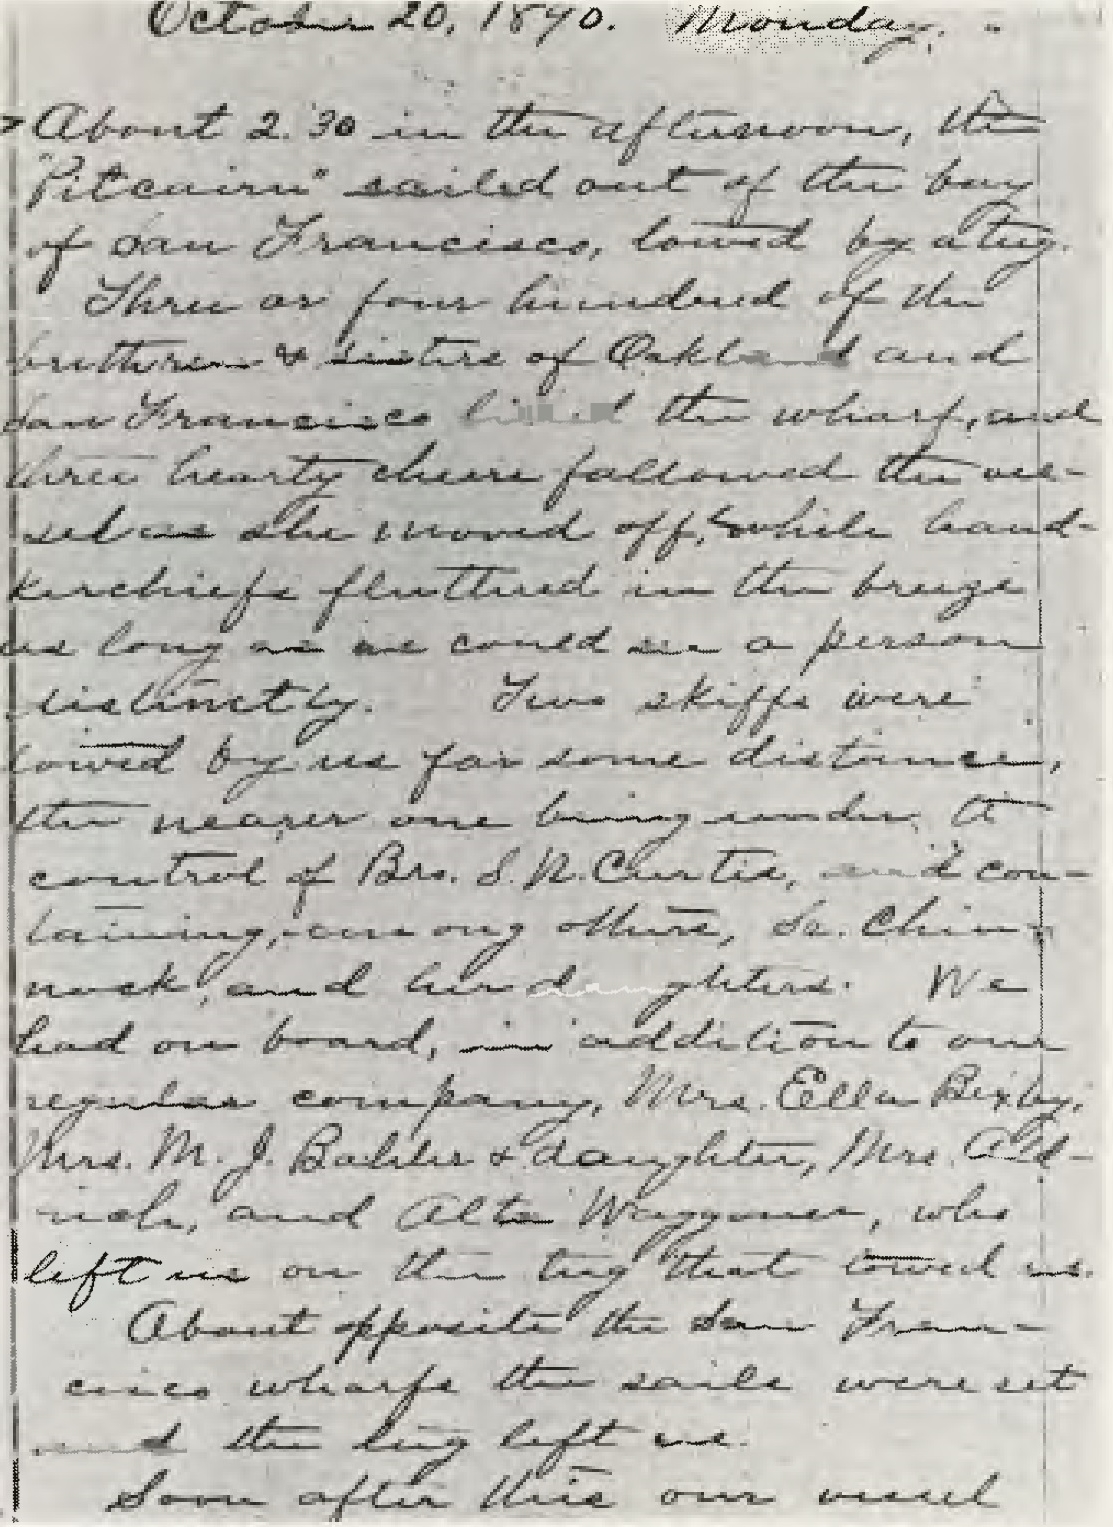 Opening page of the schooner Pitcairn's log describing her departure from San Francisco Bay on October 20, 1890.